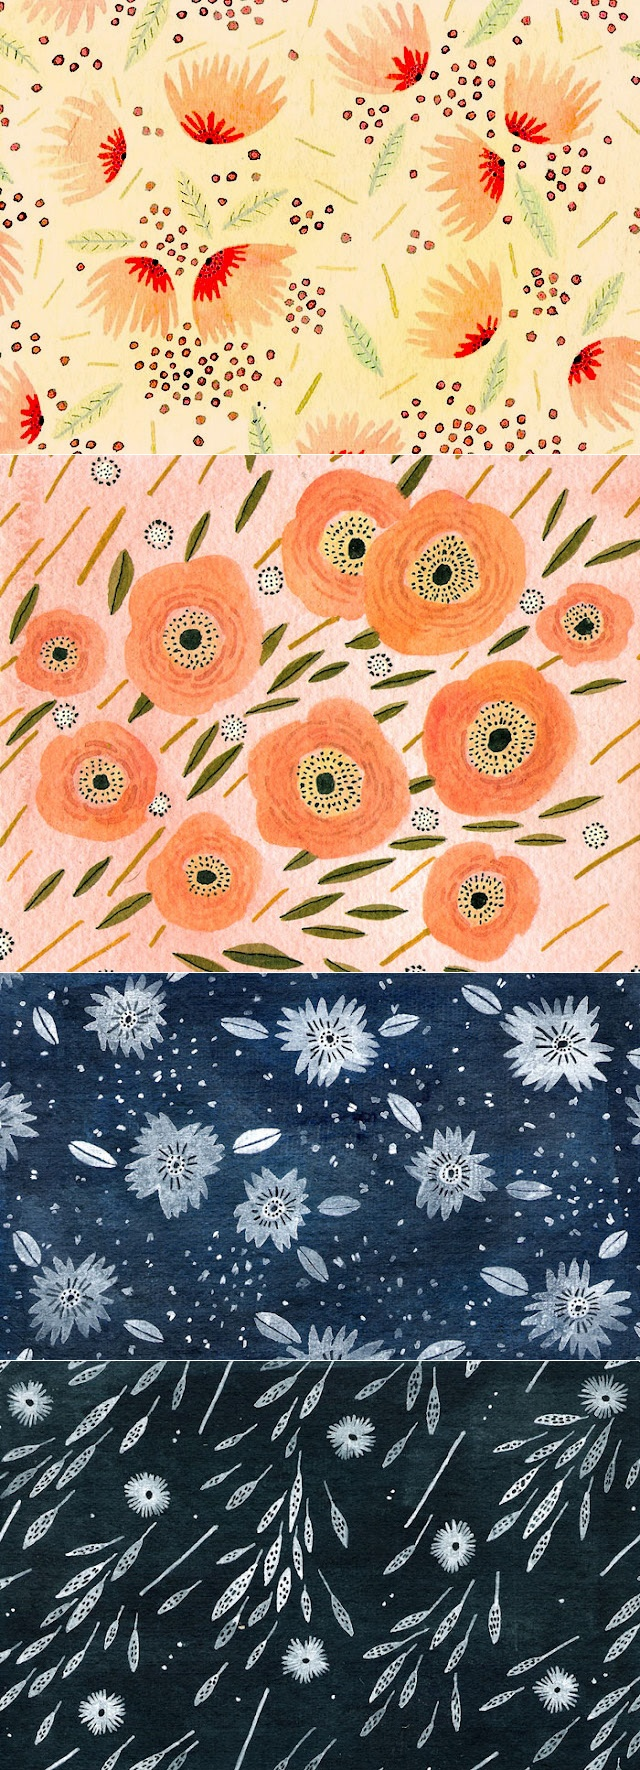 These gorgeous floral patterns by Becca Stadtlander made the blog rounds recently, and for good reason! (via nancy straughan nancystraughan.bl...)